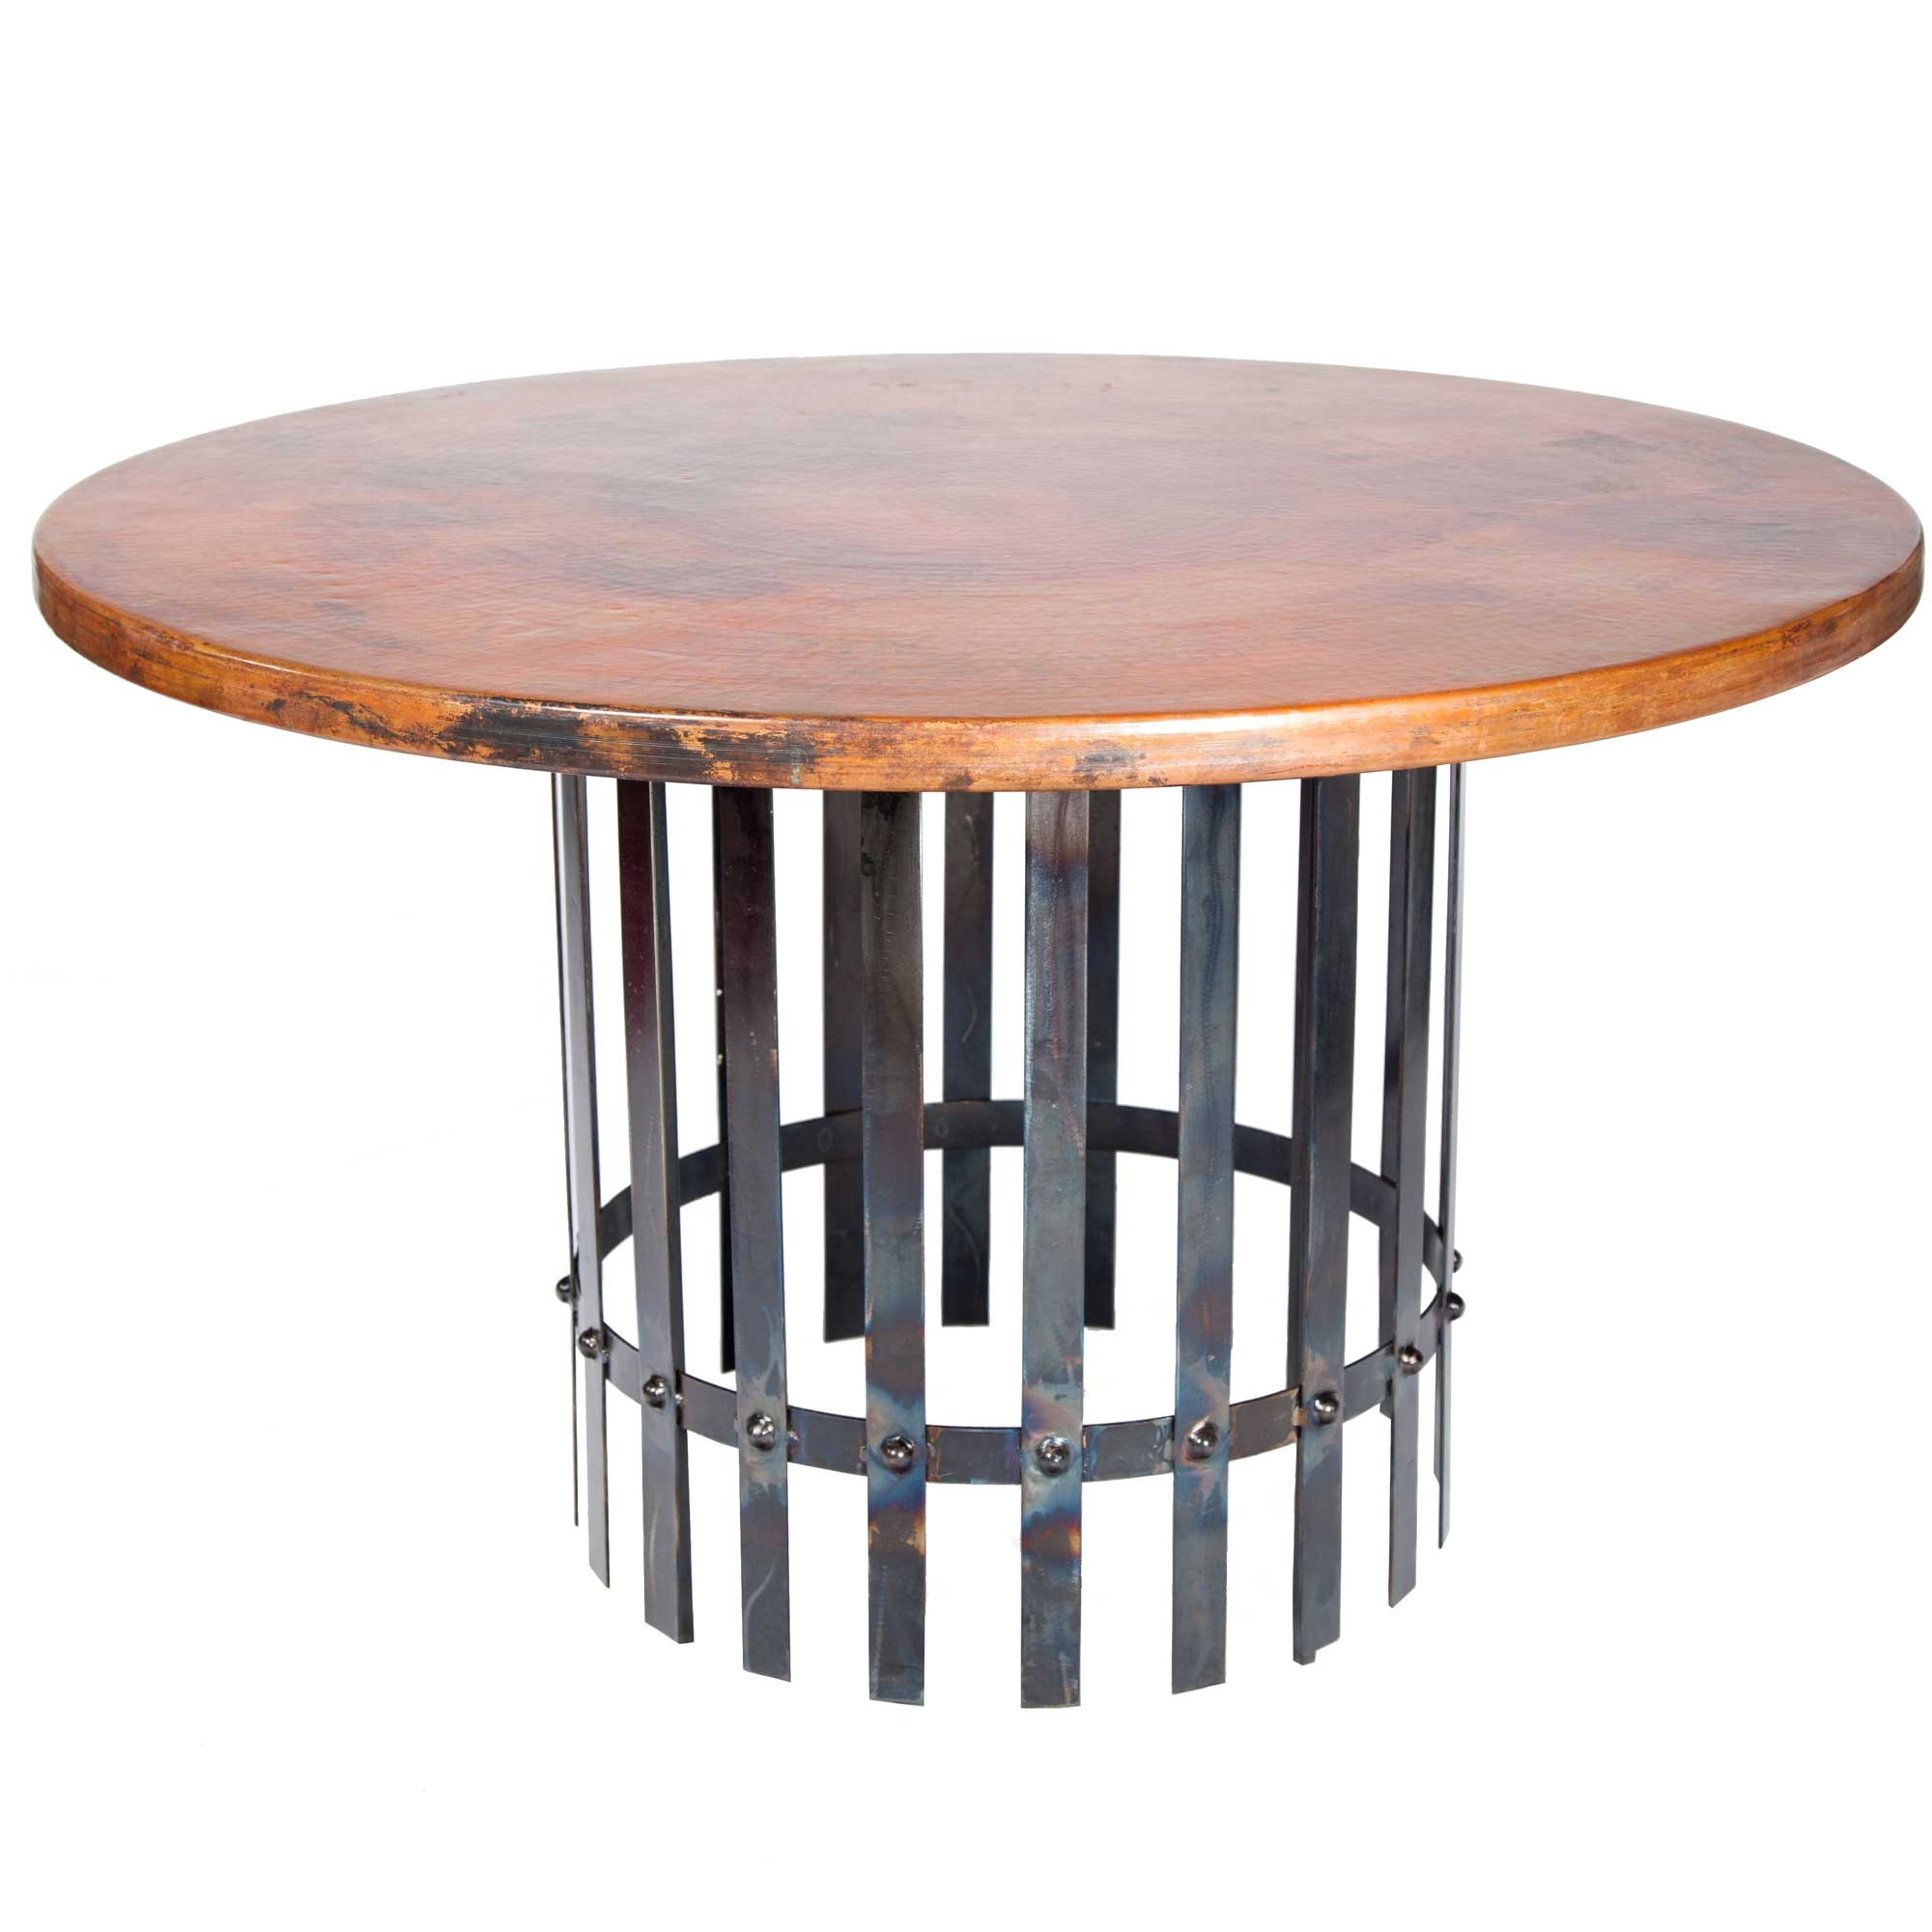 Ashton Iron Dining Table with 54 Round Hammered Copper Top